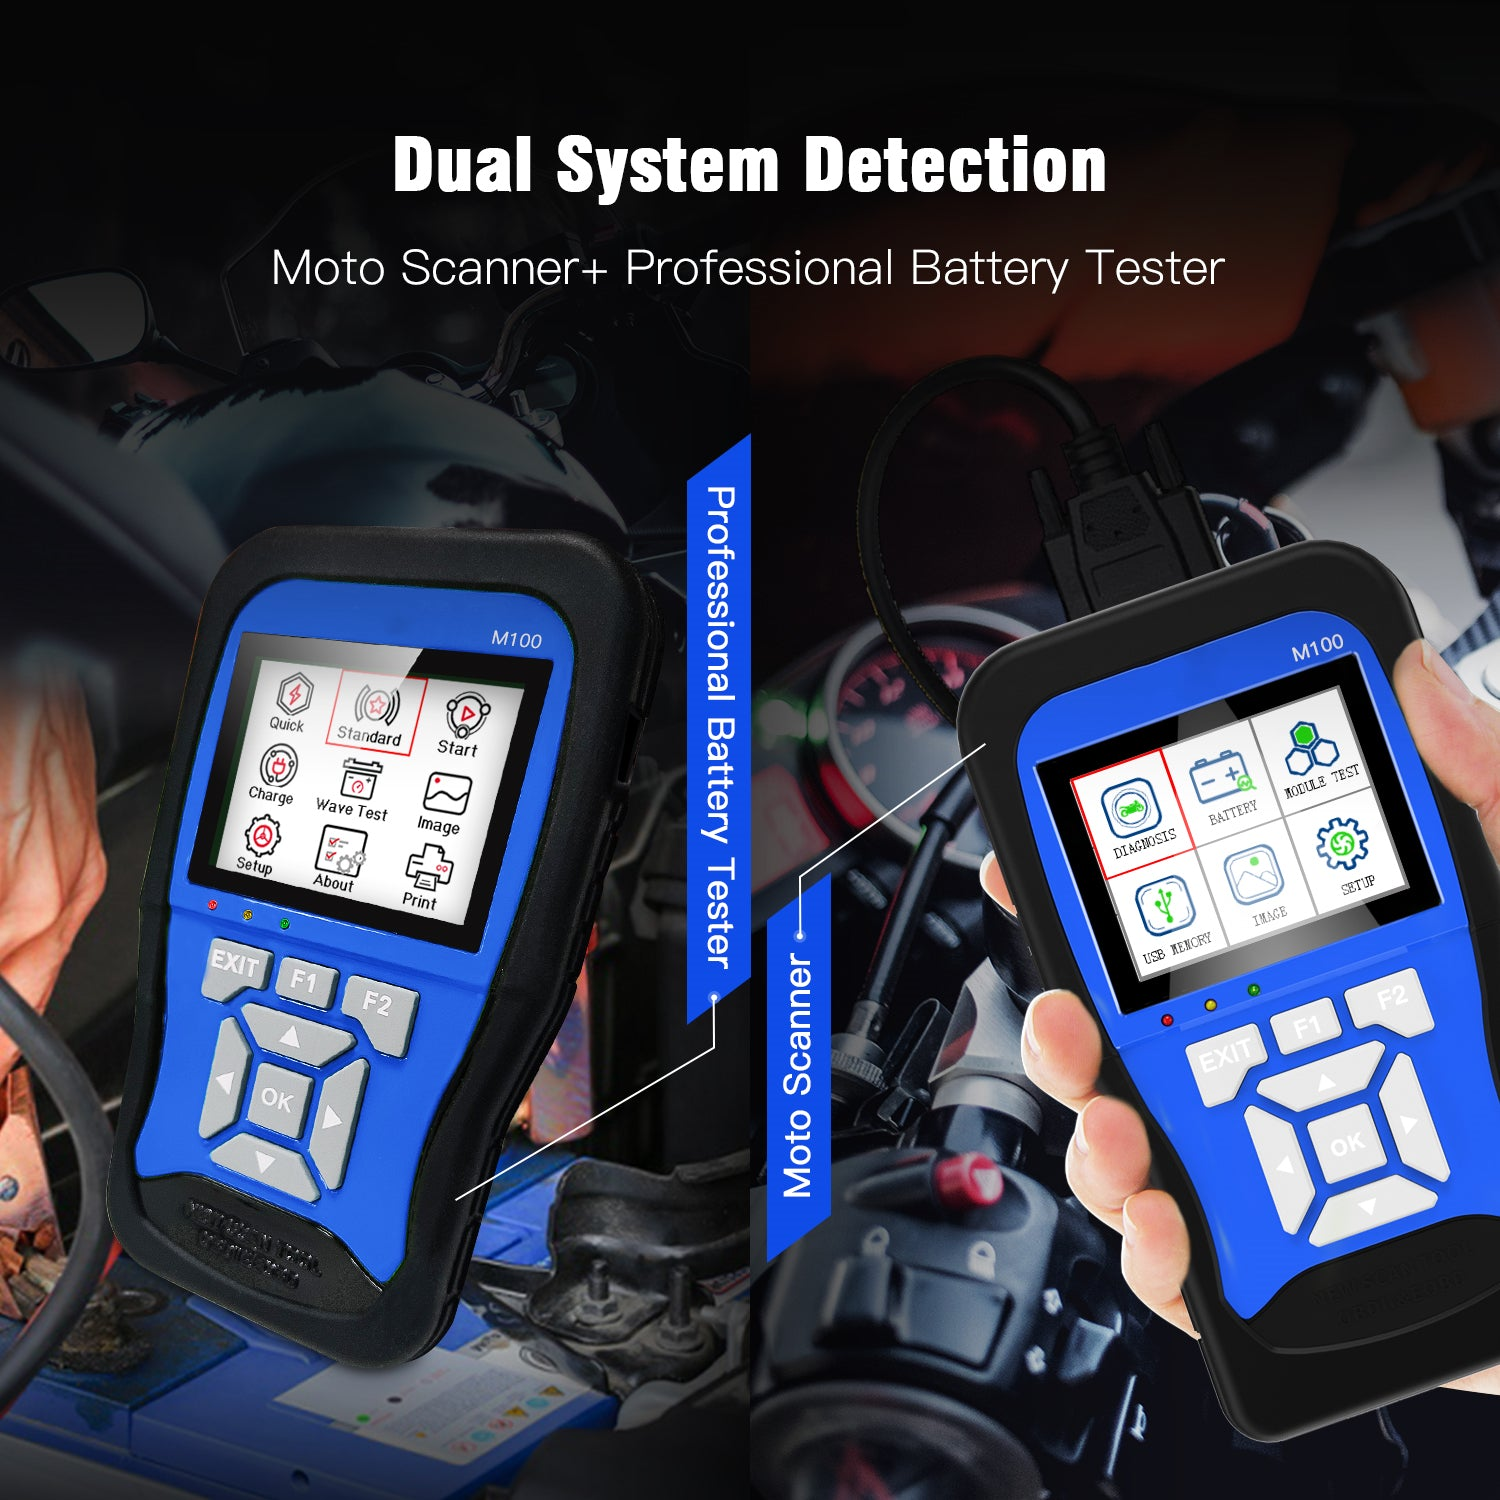 M100 Motorcycle Diagnostic Tool for Kawasaki Yamaha Suzuki Moto Scanner with Battery Tester 2 in 1 Dual System Detection